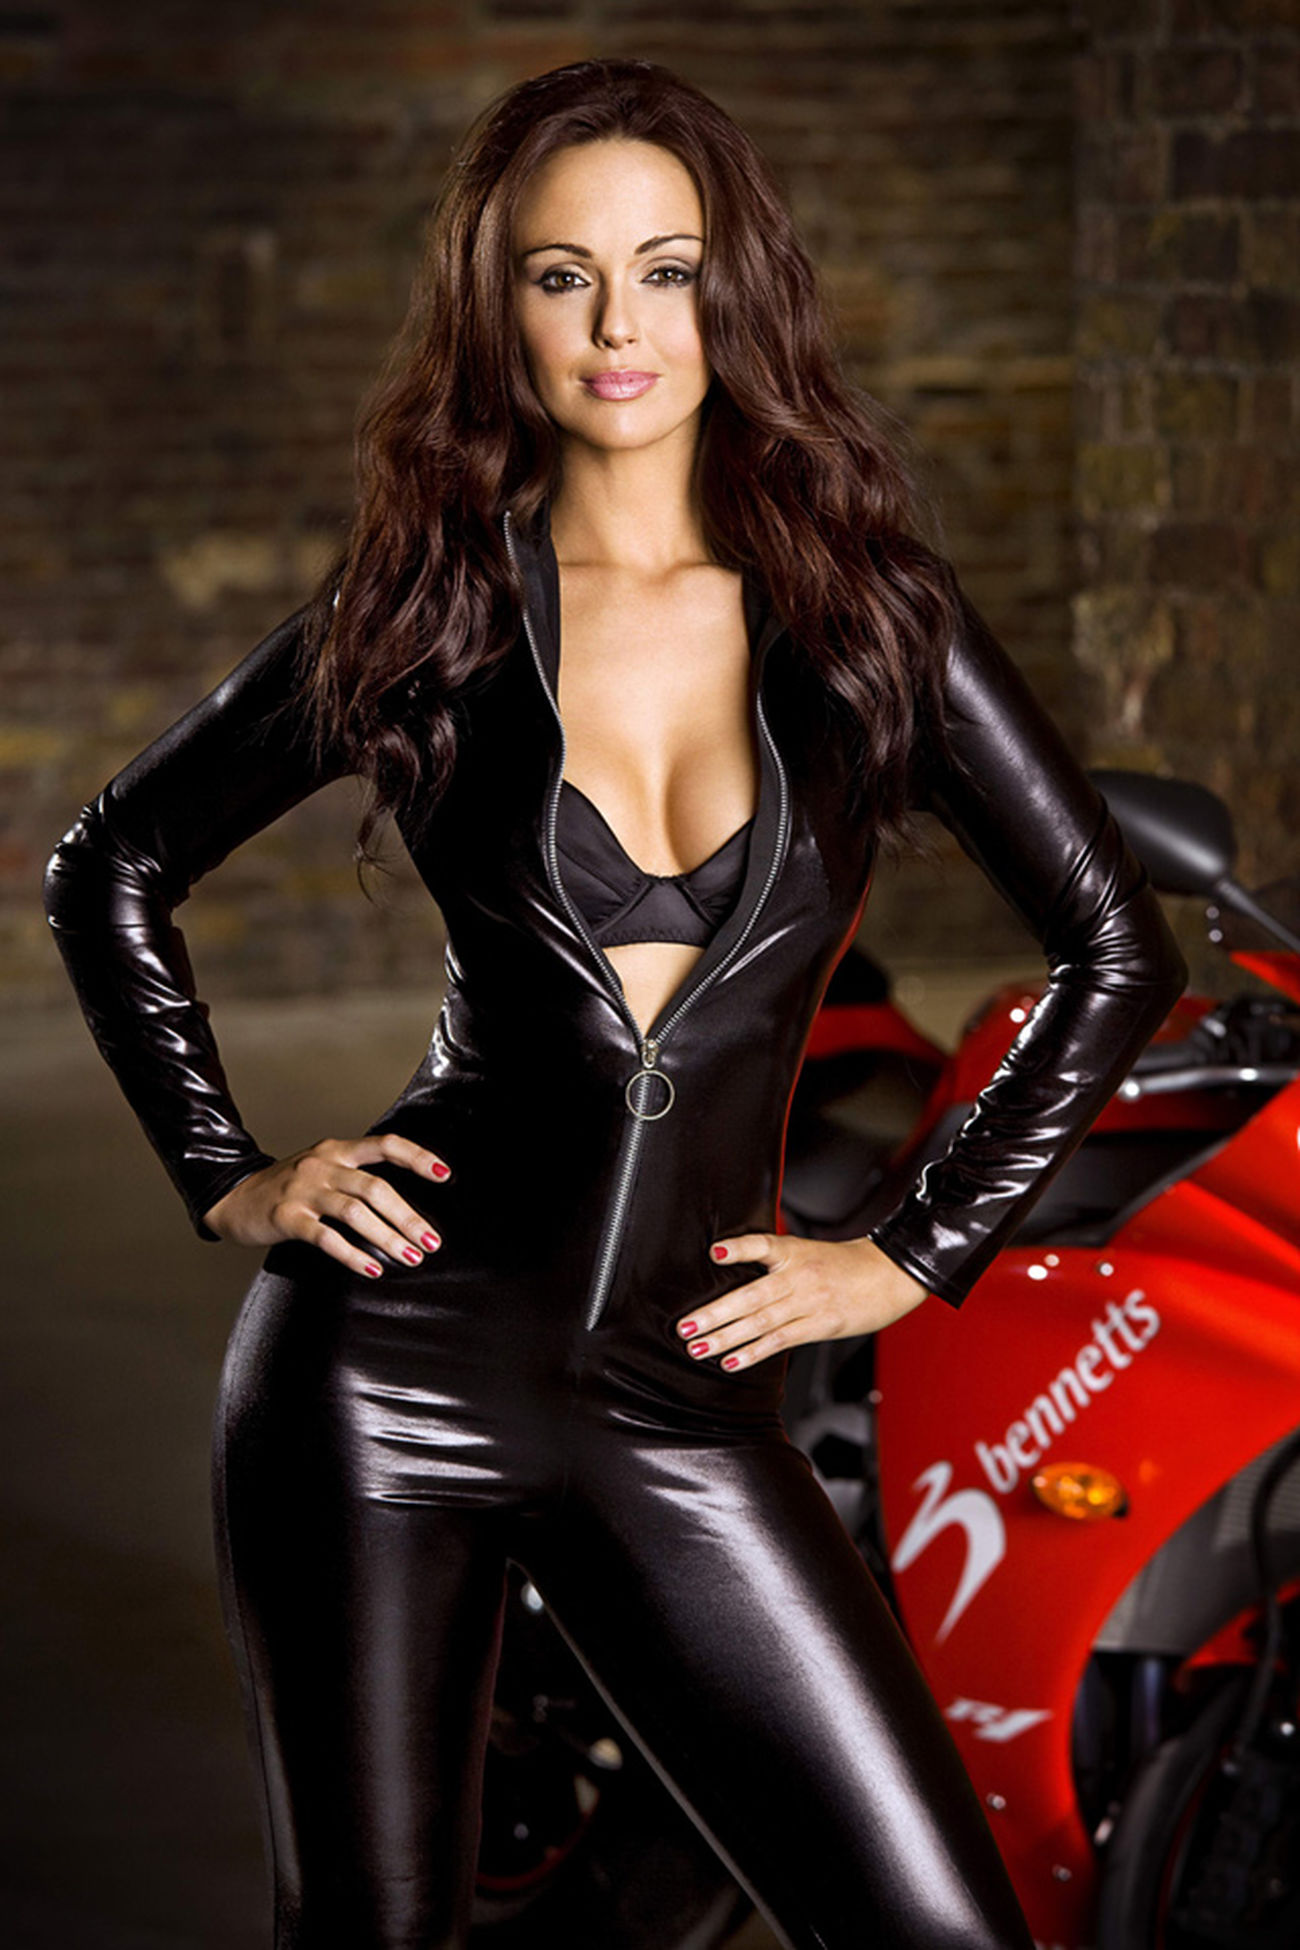 Leather Beauty Beautiful People Black Color One Woman Only Adult Adults Only Only Women Fashion Looking At Camera Young Adult One Young Woman Only Motorcycle Individuality Portrait One Person Women Beautiful Woman Long Hair Red Undress Undressed Sexy Commute Babysex Damn U Re Cute !!!!!!